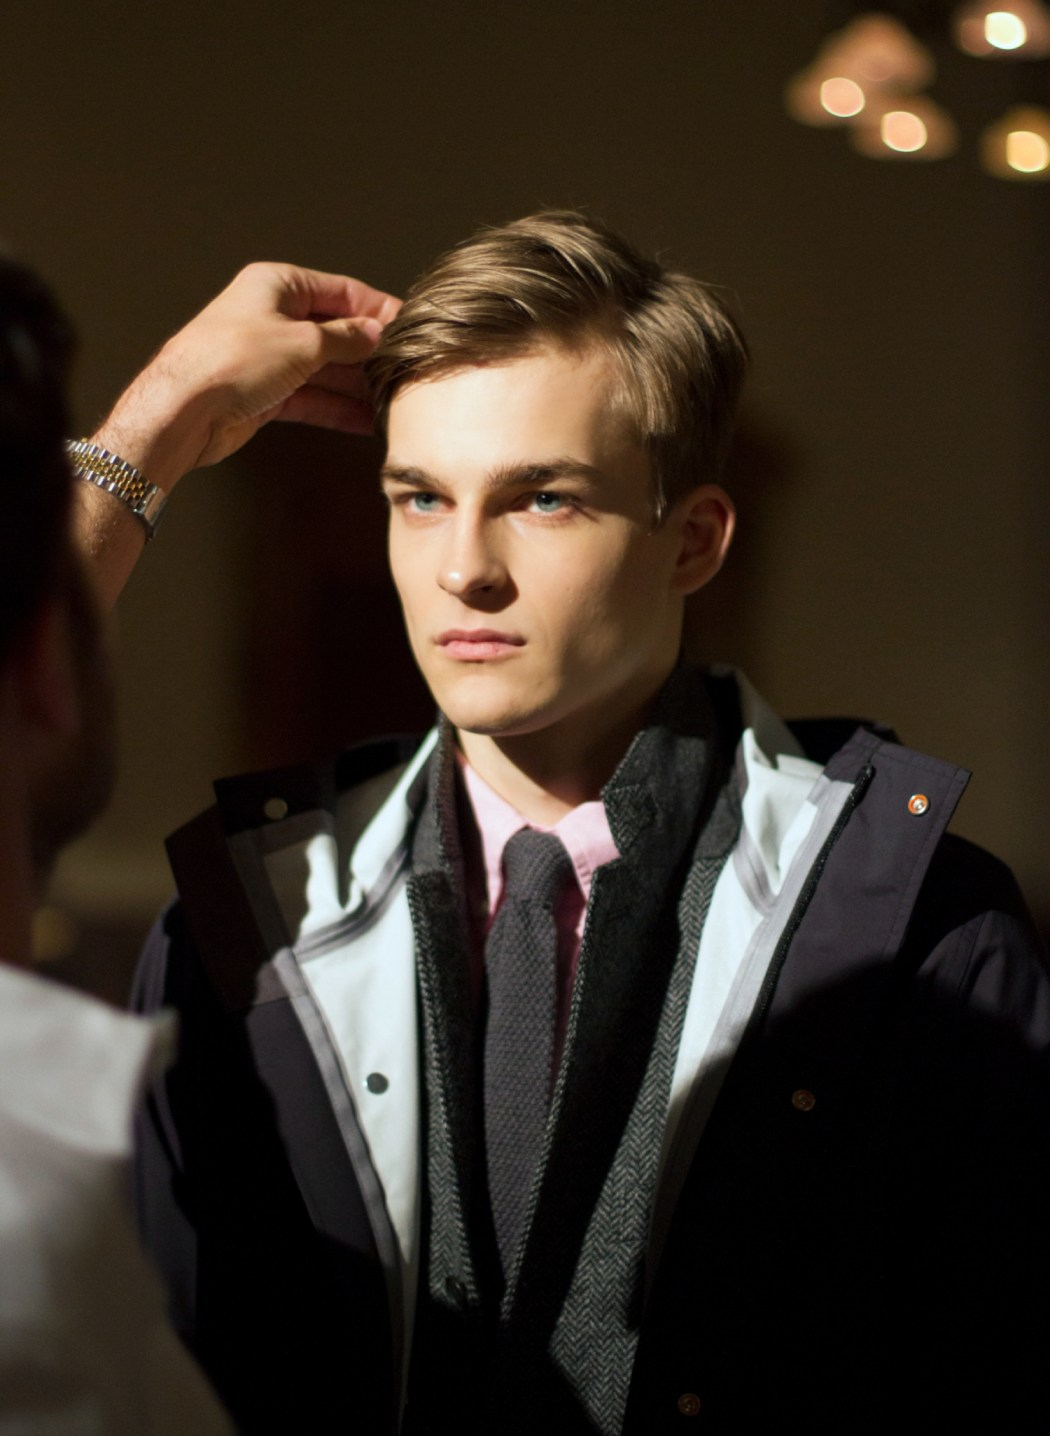 Backstage at the Jack Spade Fall Winter 2014 Show 4